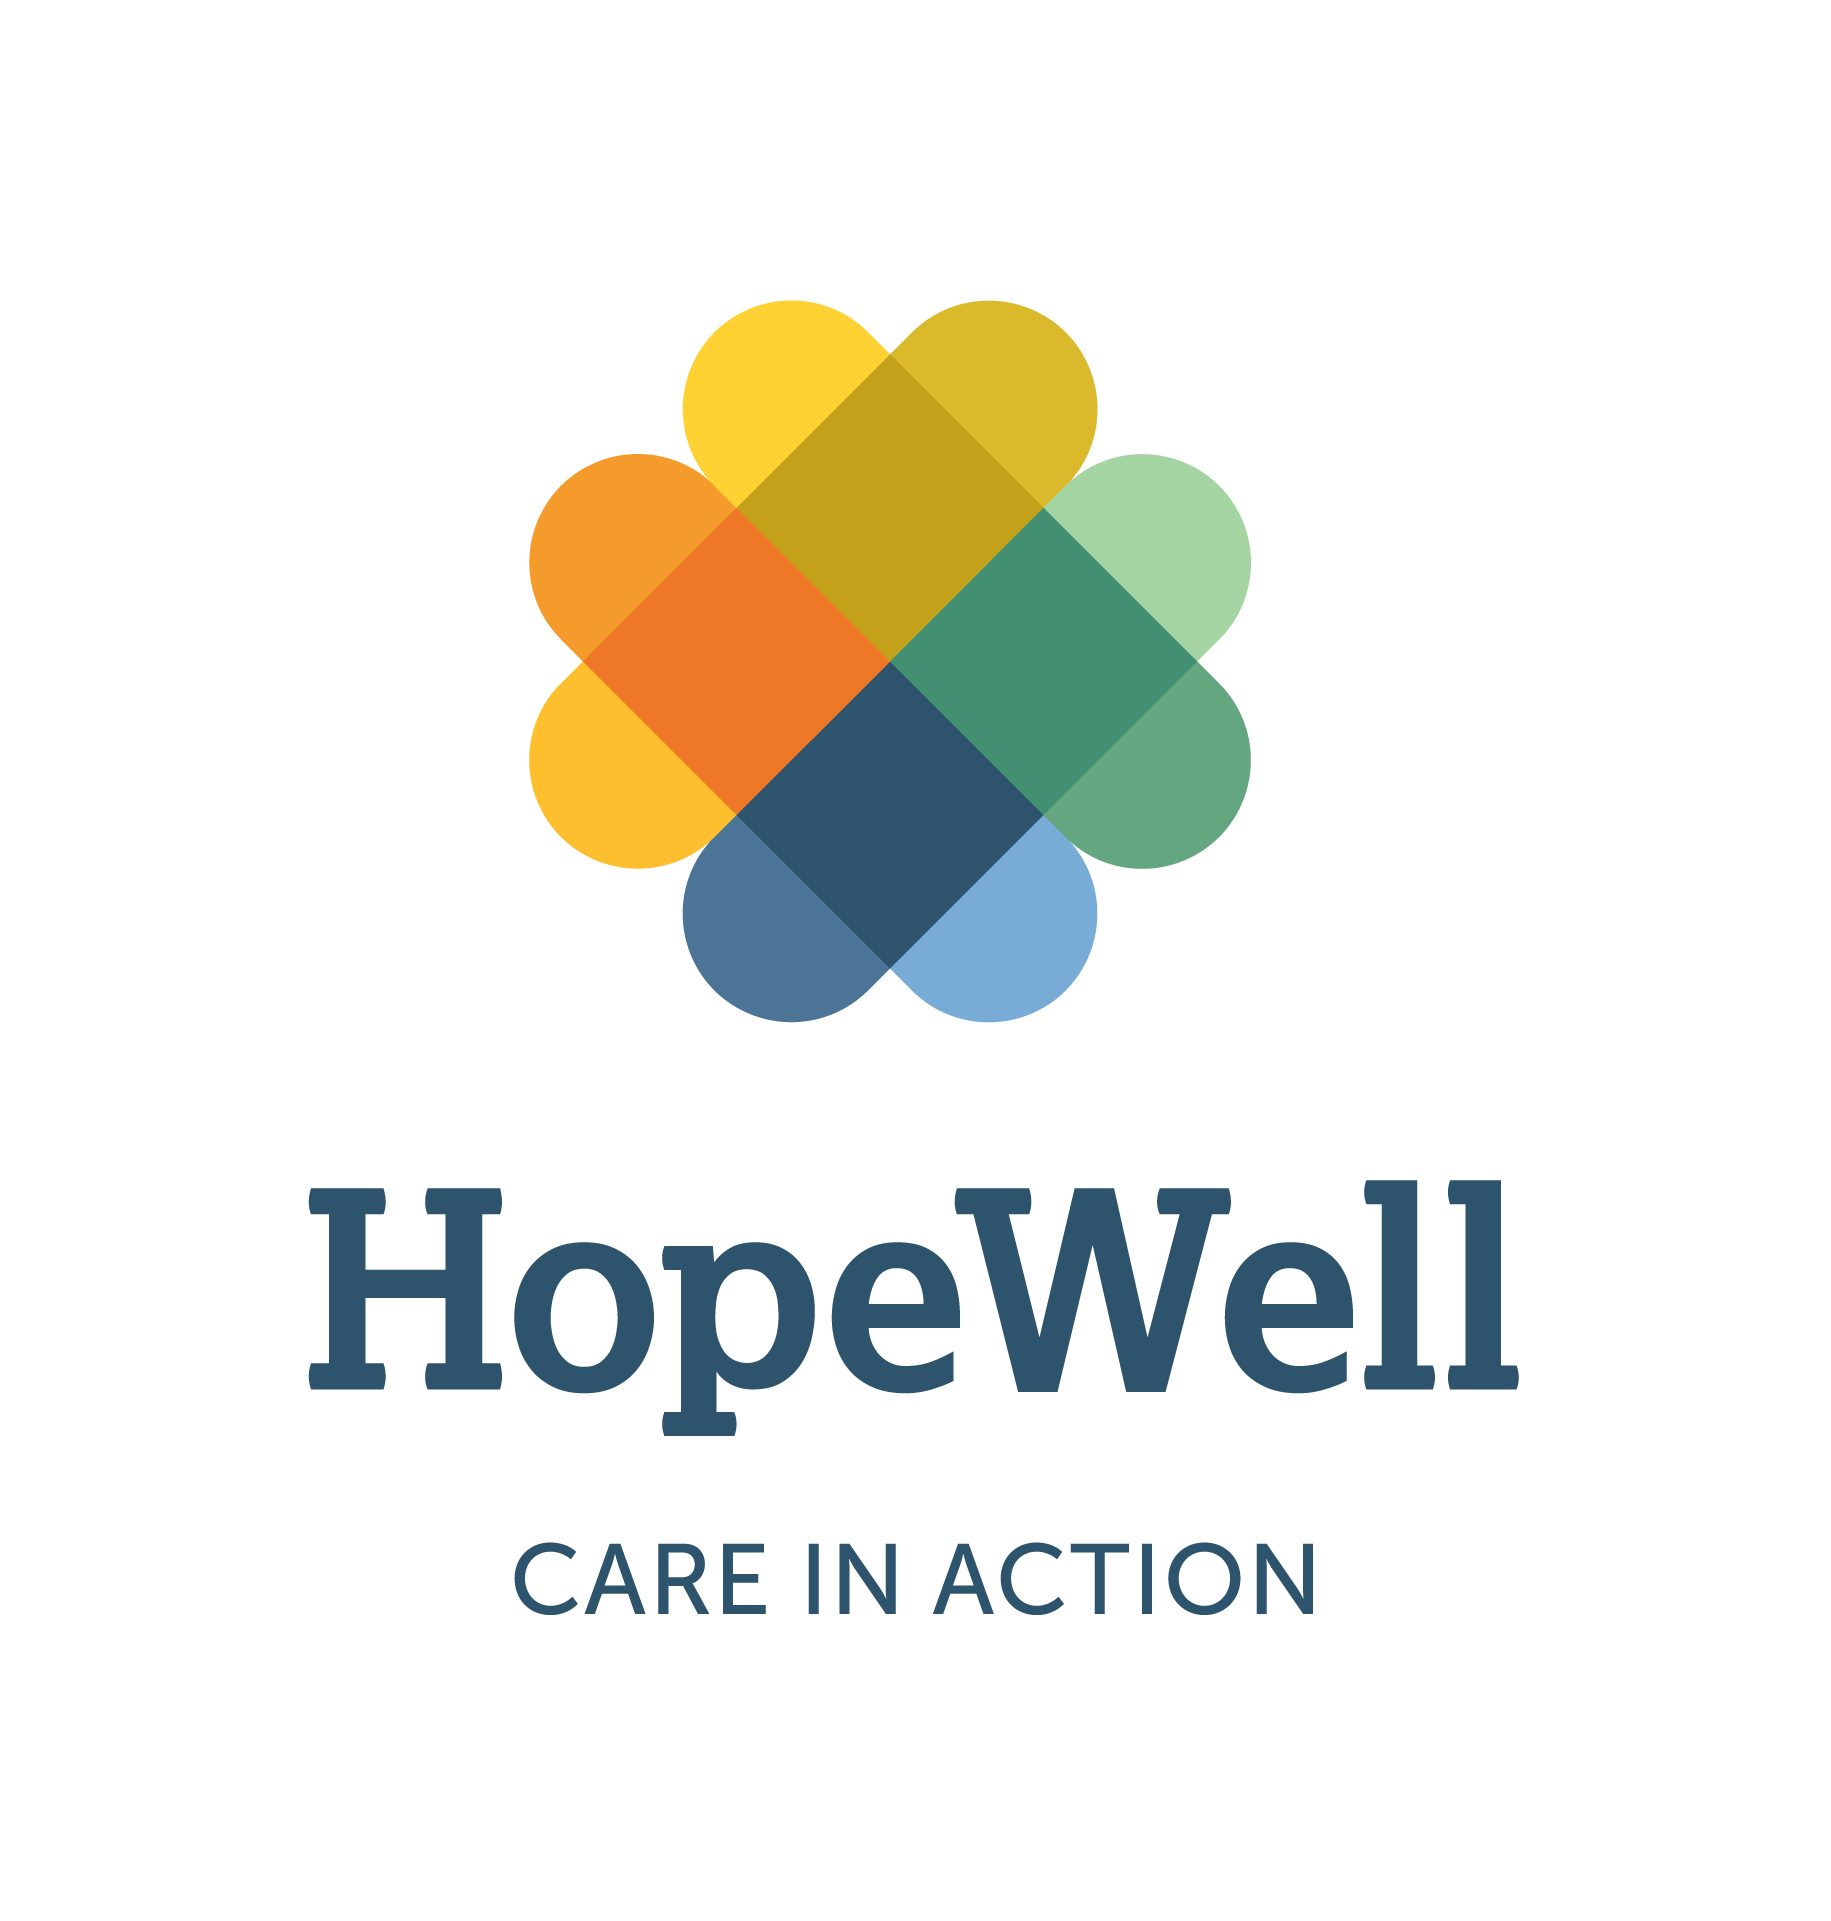 HopeWell: Care in Action